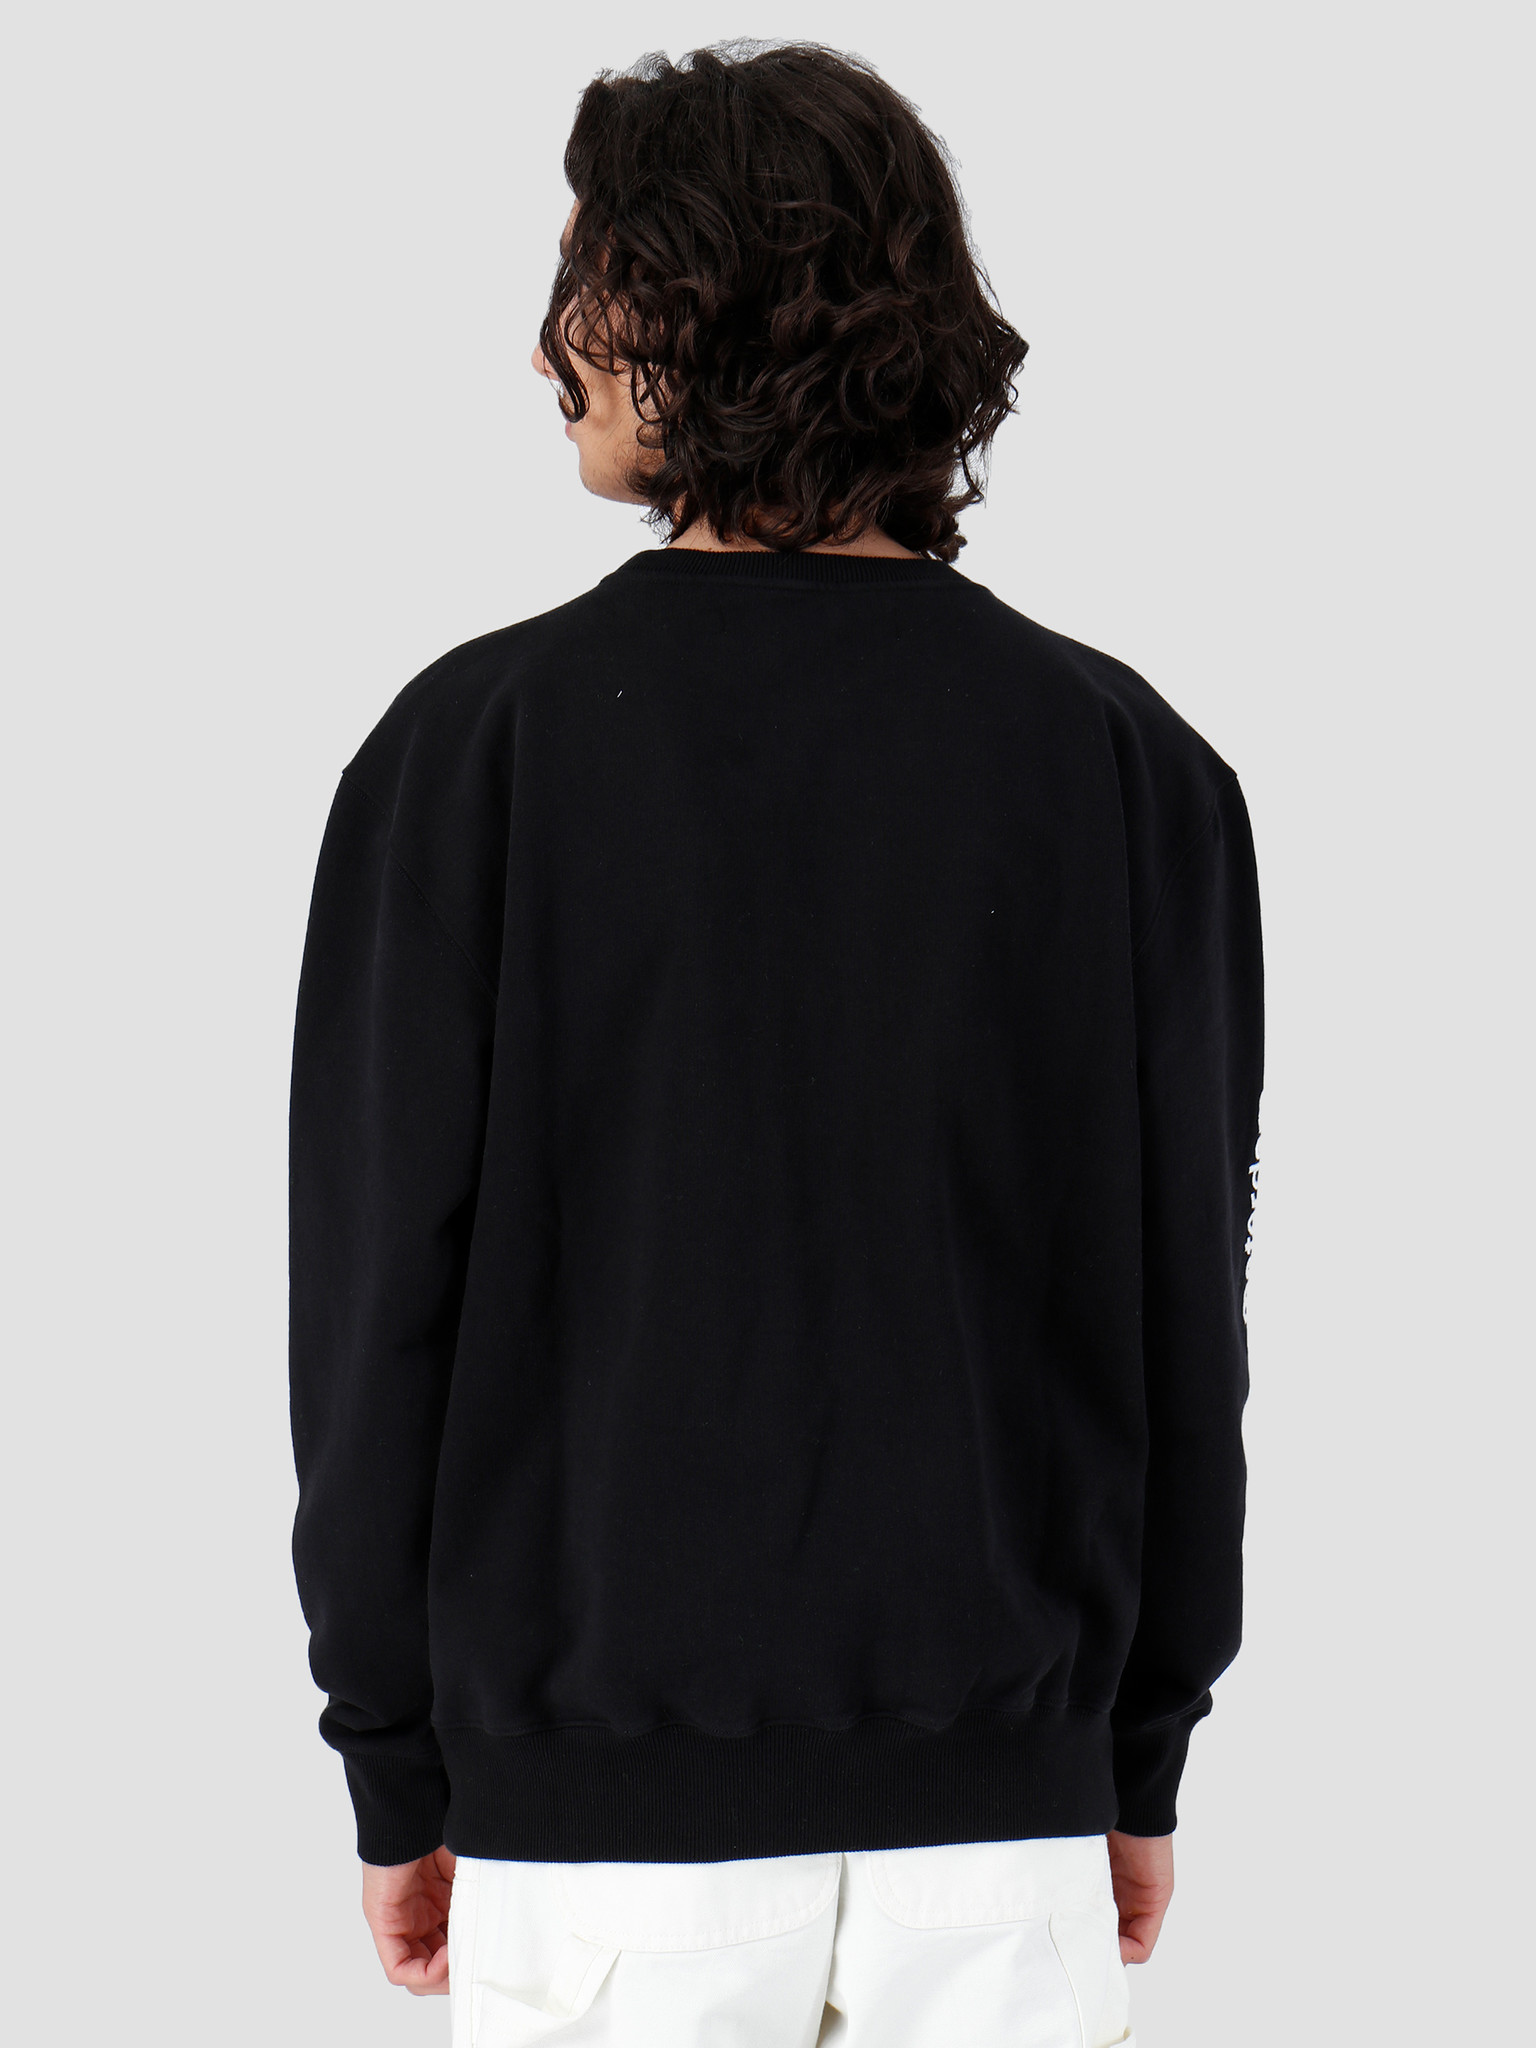 New Amsterdam Surf association New Amsterdam Surf association Logo Sweat Black 2018005